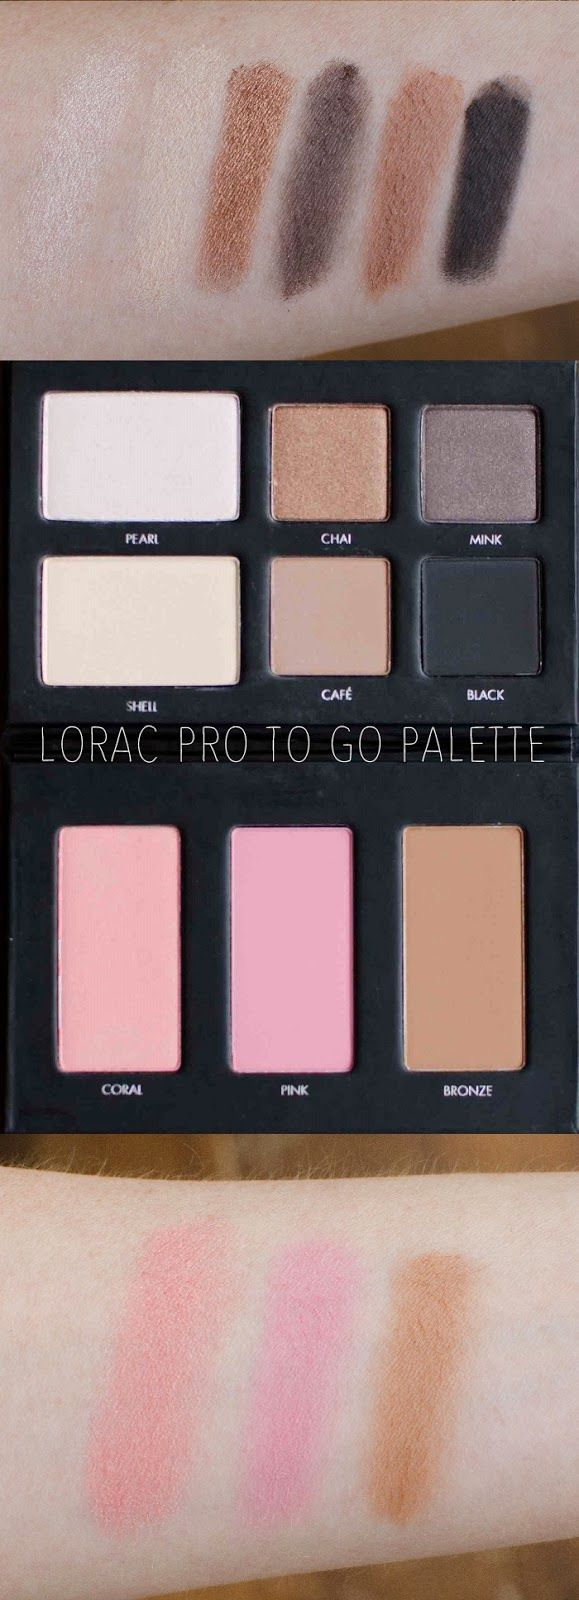 Lorac Pro to go palette : GREAT for travel or to give as a gift!